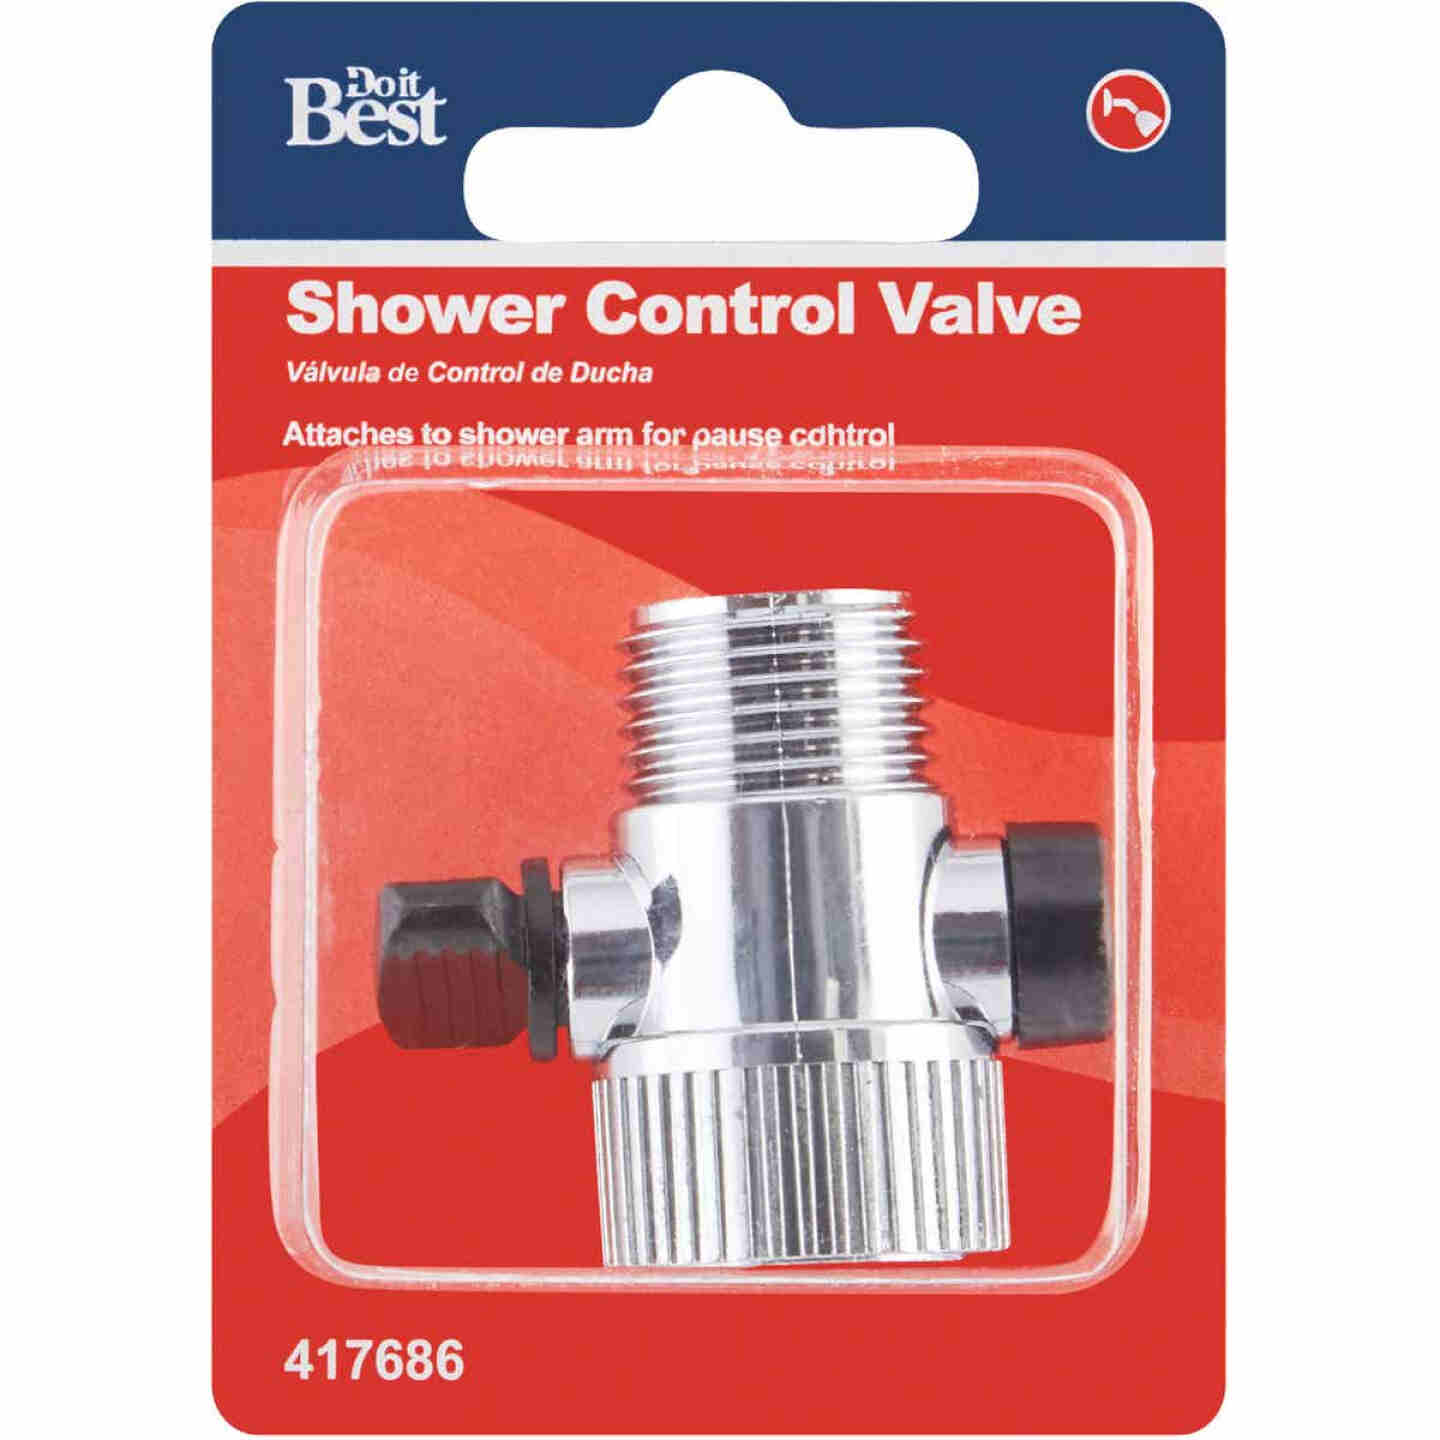 Do it 1/2 In. Chrome Shower Head Flow Control Image 2